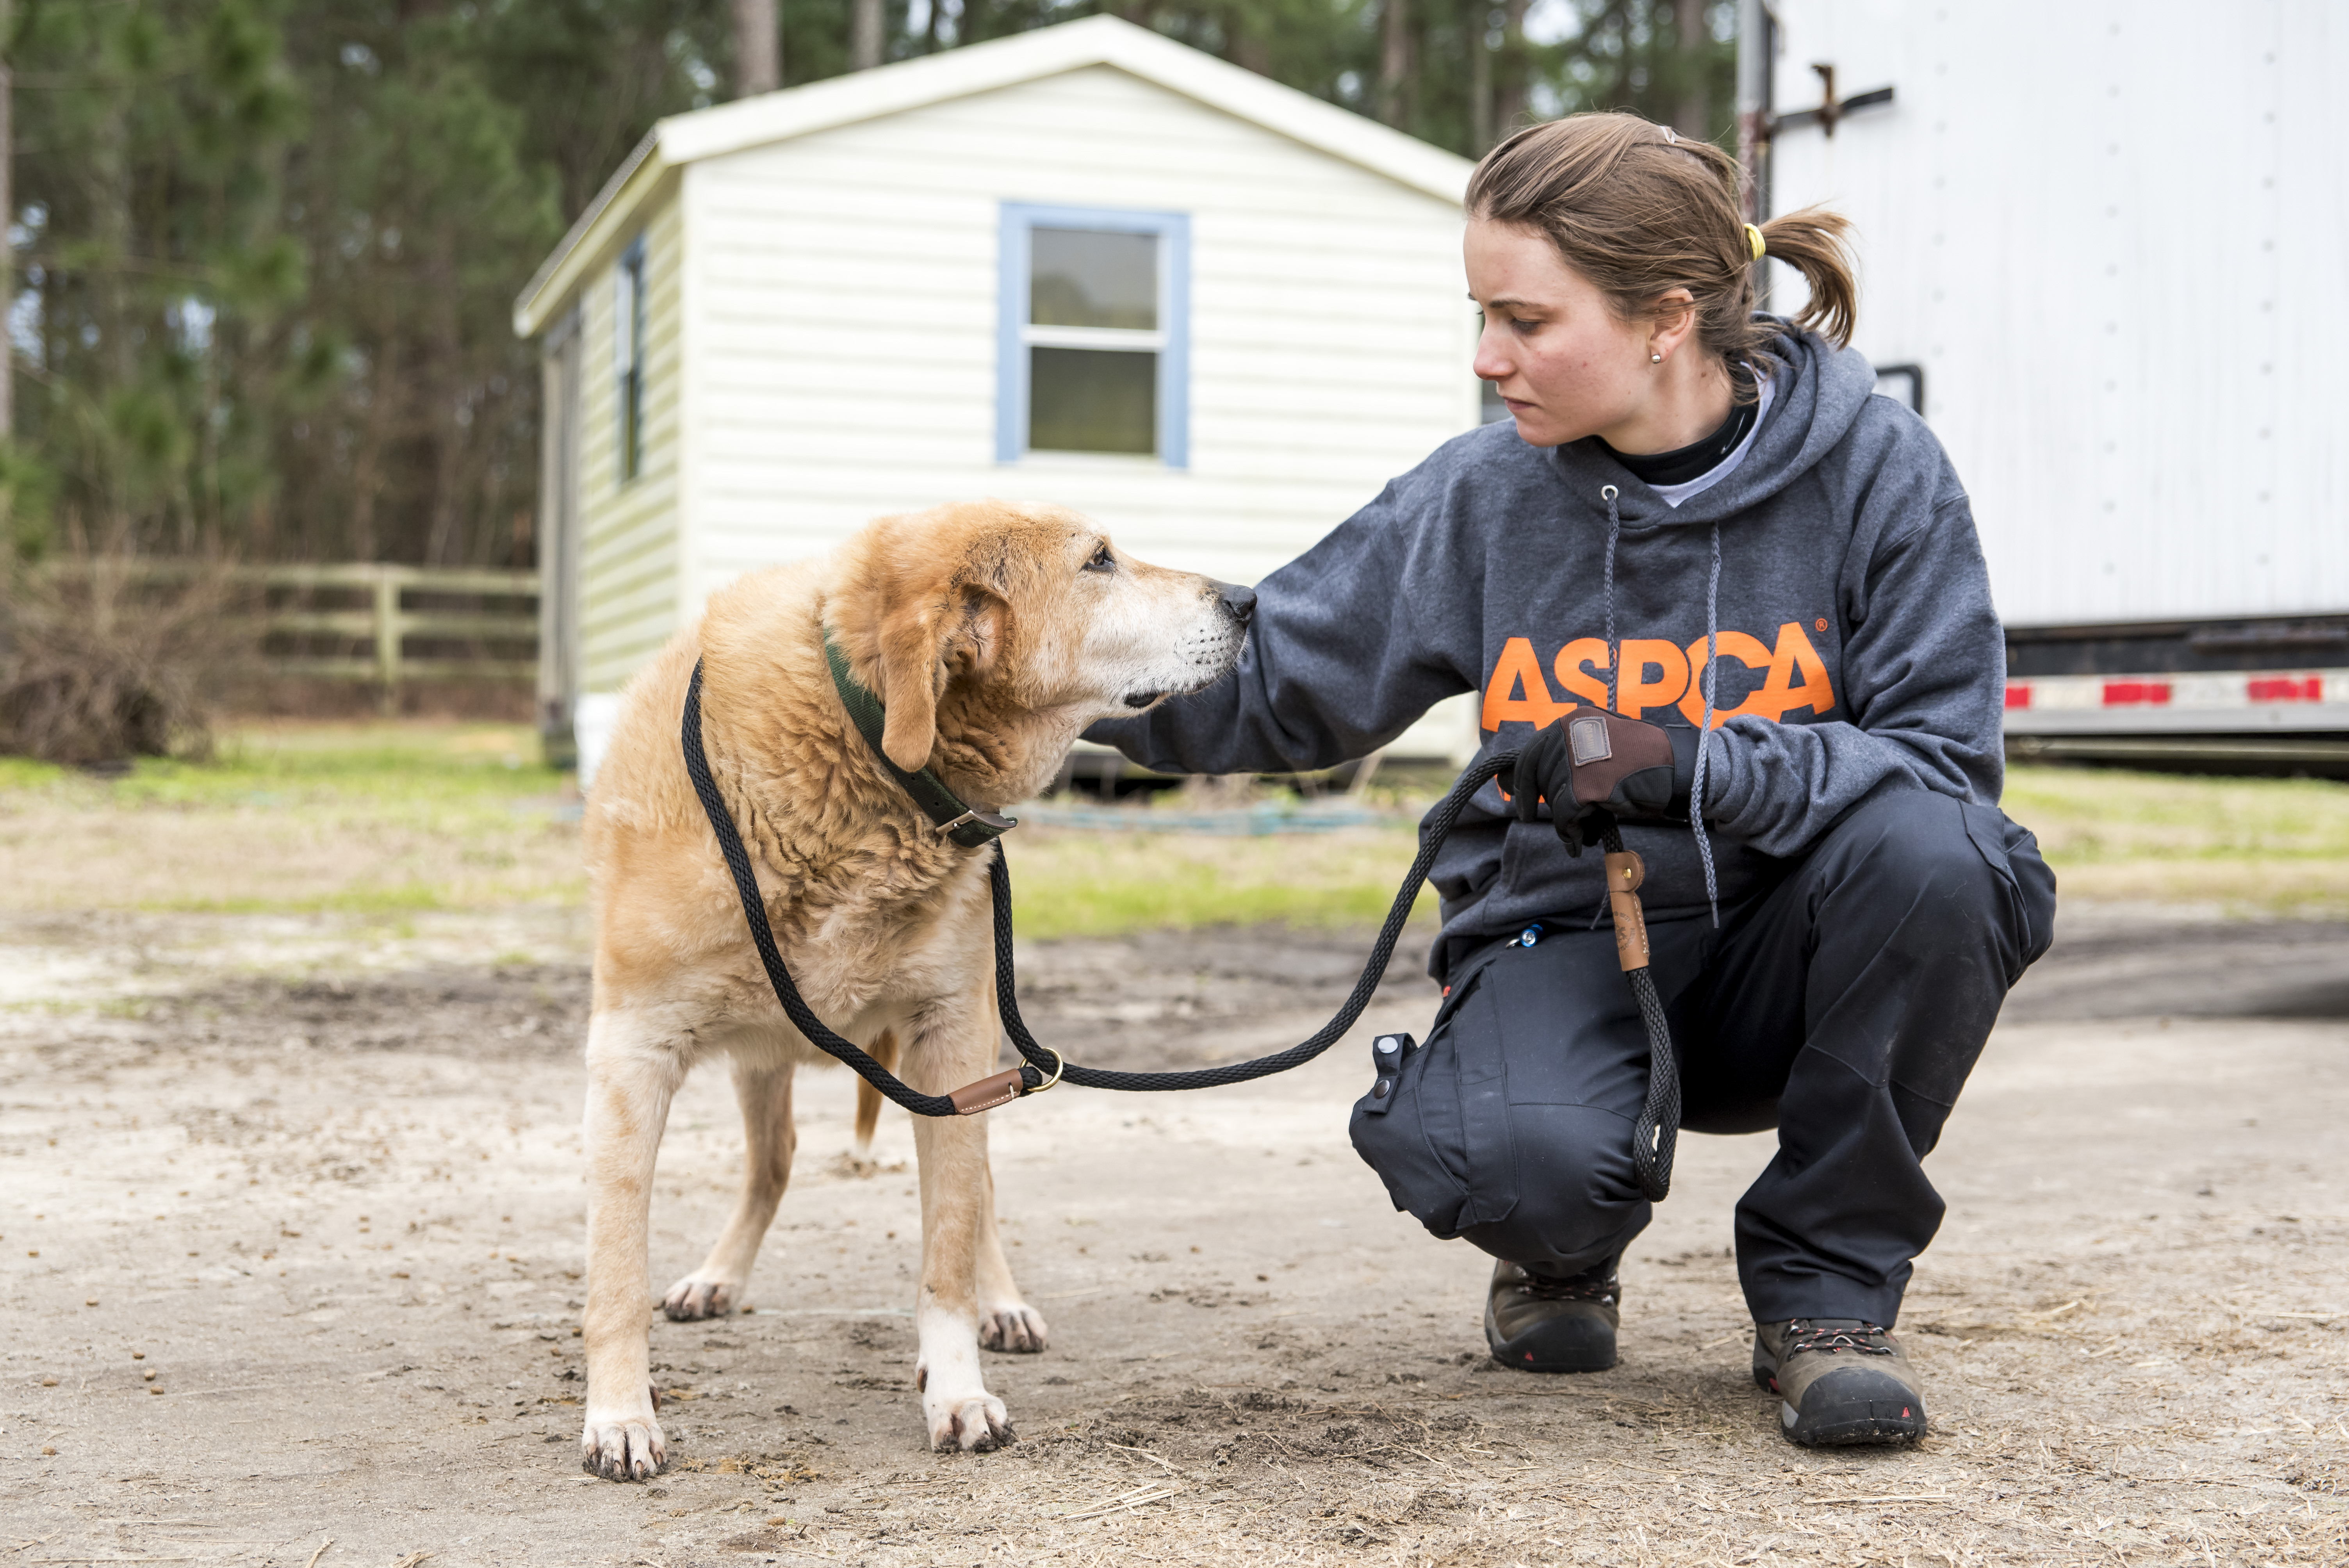 Evaluating rescue groups: How do you choose?